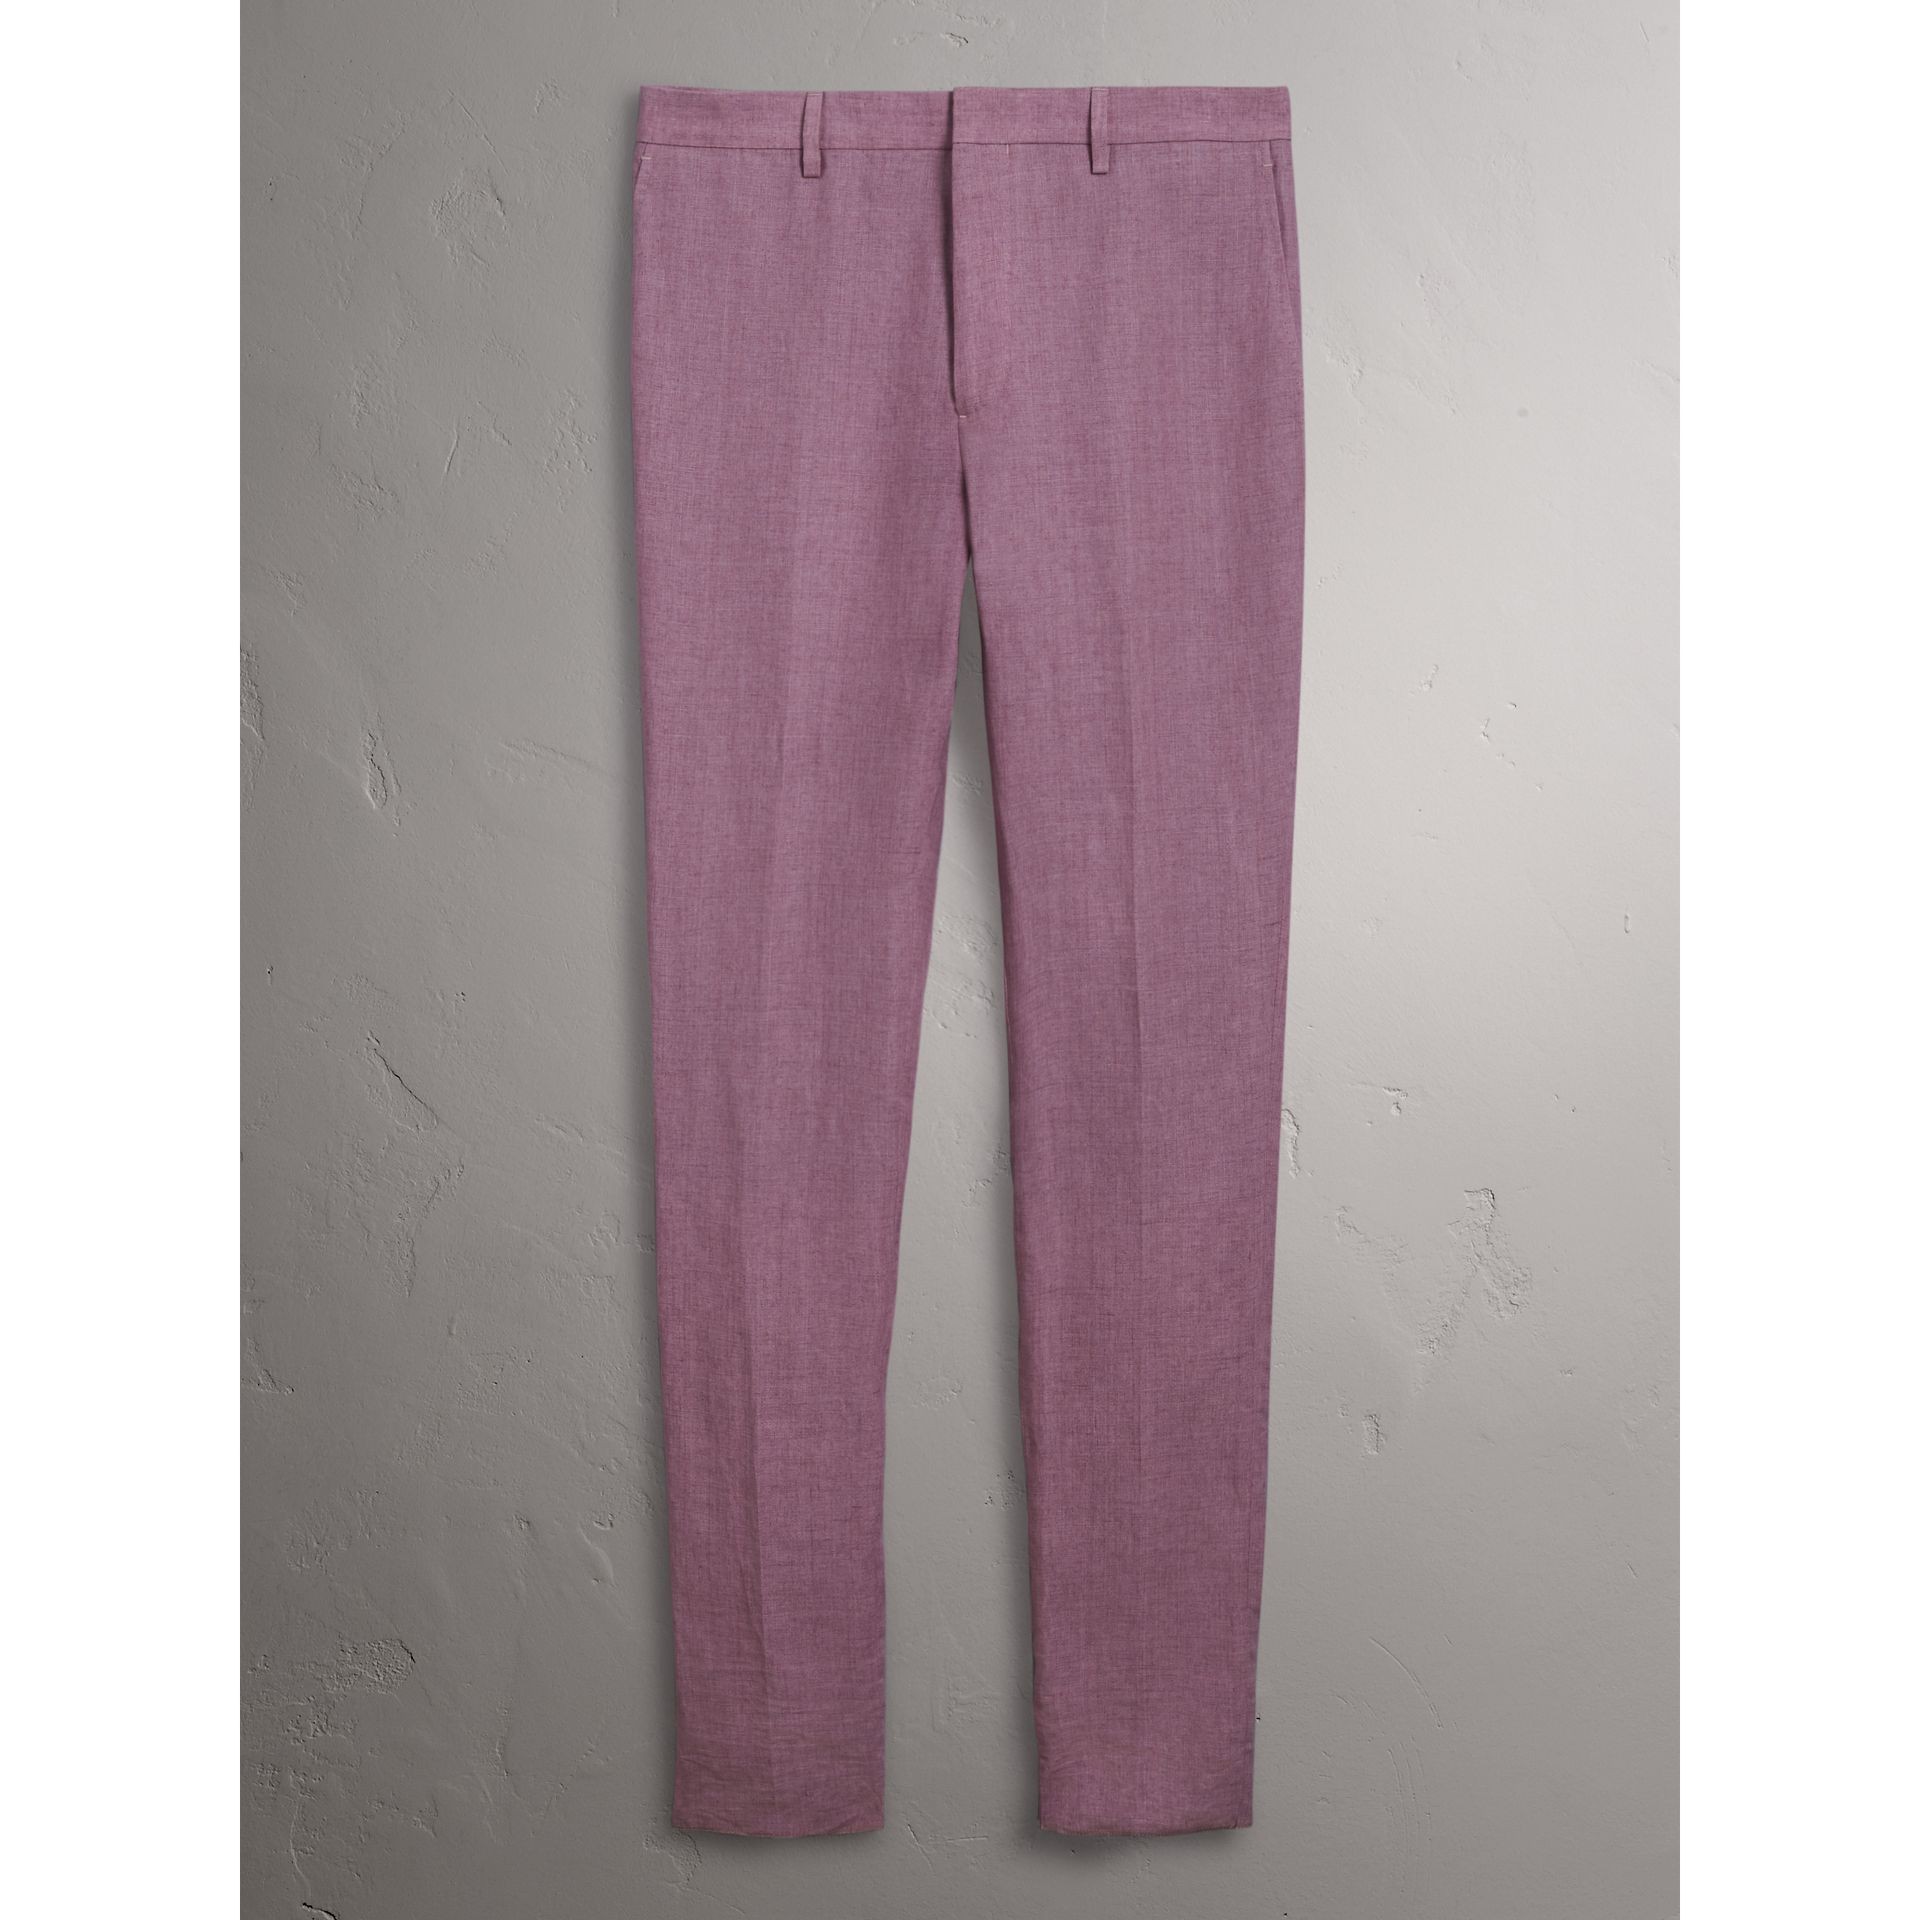 Soho Fit Linen Trousers in Pink Heather - Men | Burberry - gallery image 3